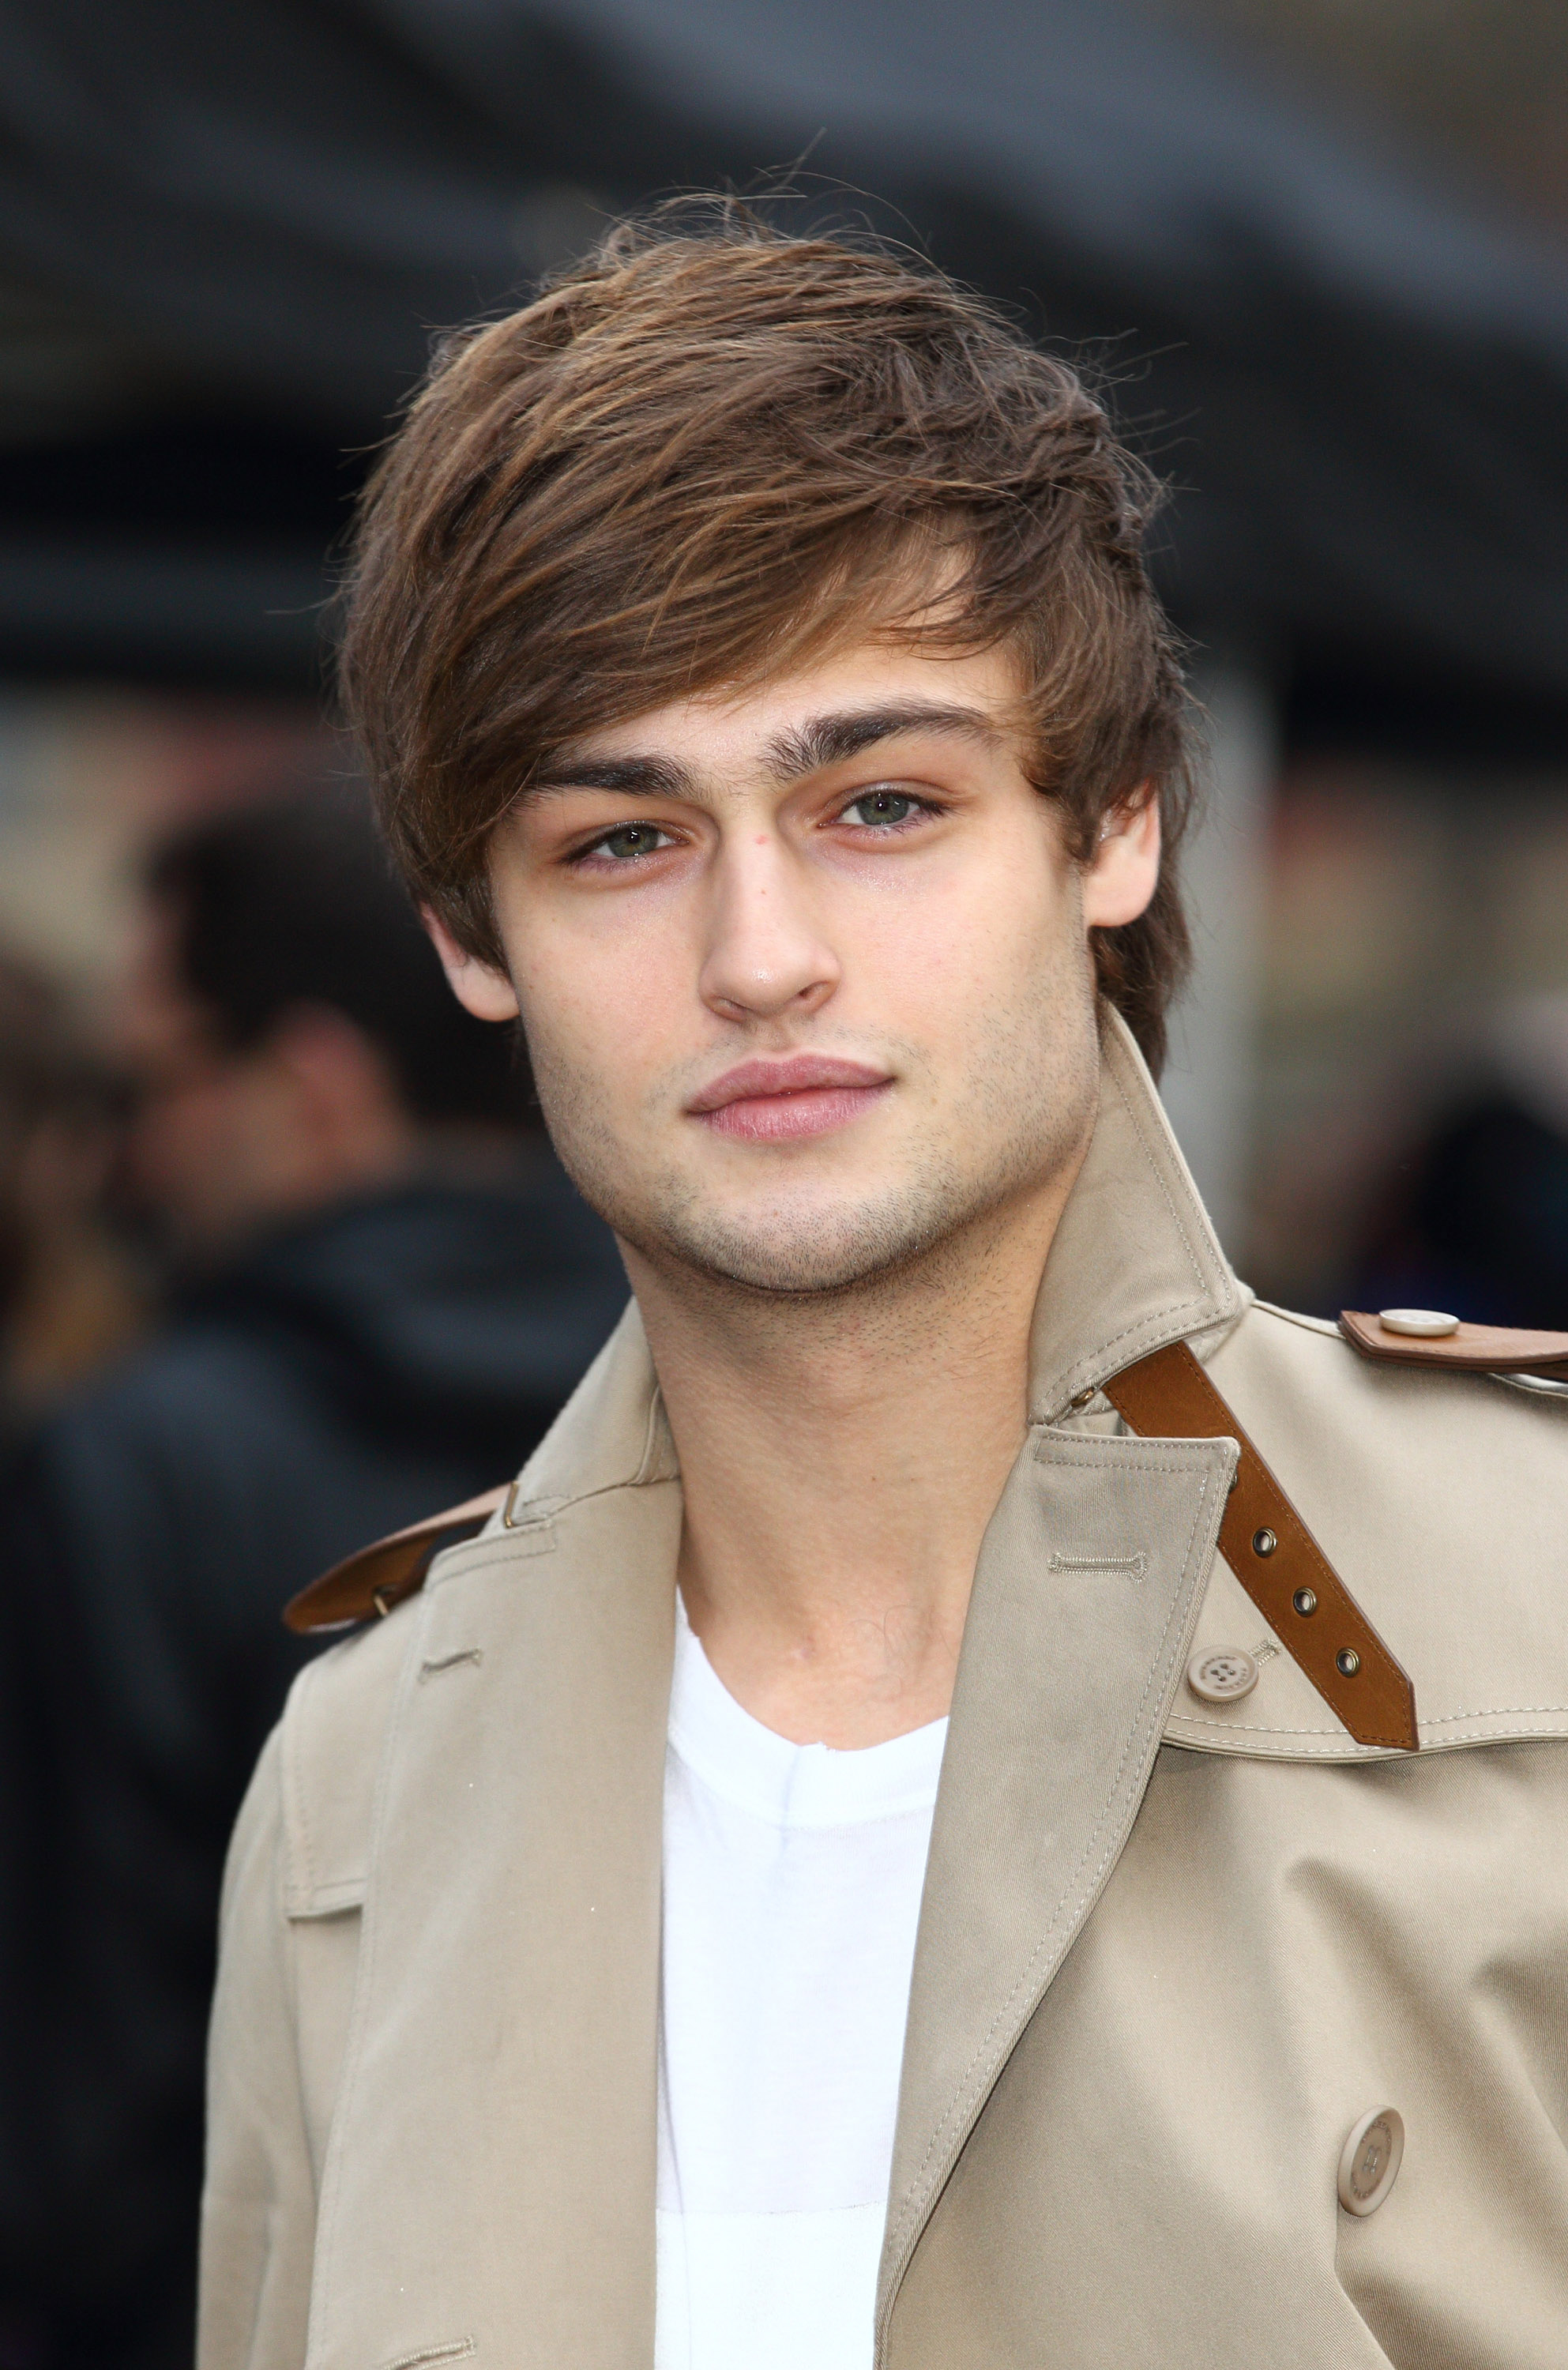 1985x3000 - Douglas Booth Wallpapers 21